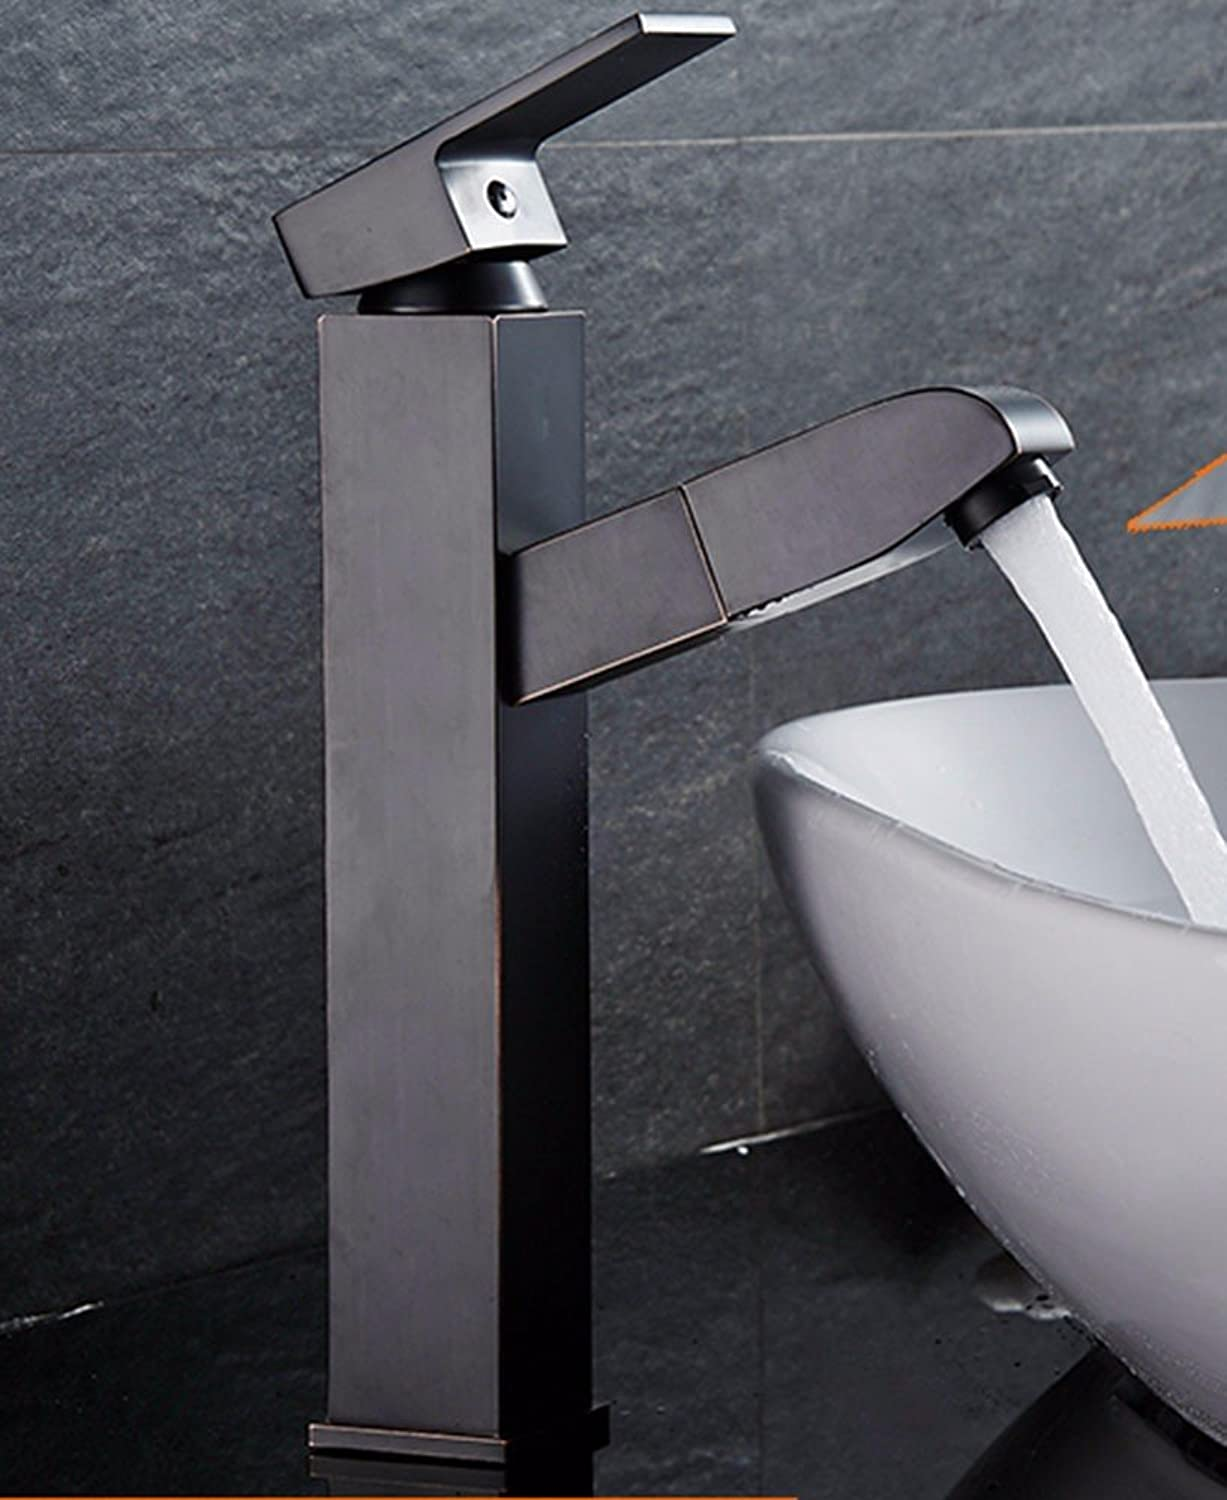 LHbox Basin Mixer Tap Bathroom Sink Faucet Copper, hot and cold, the basin, pull out the high, bathroom faucets, 7